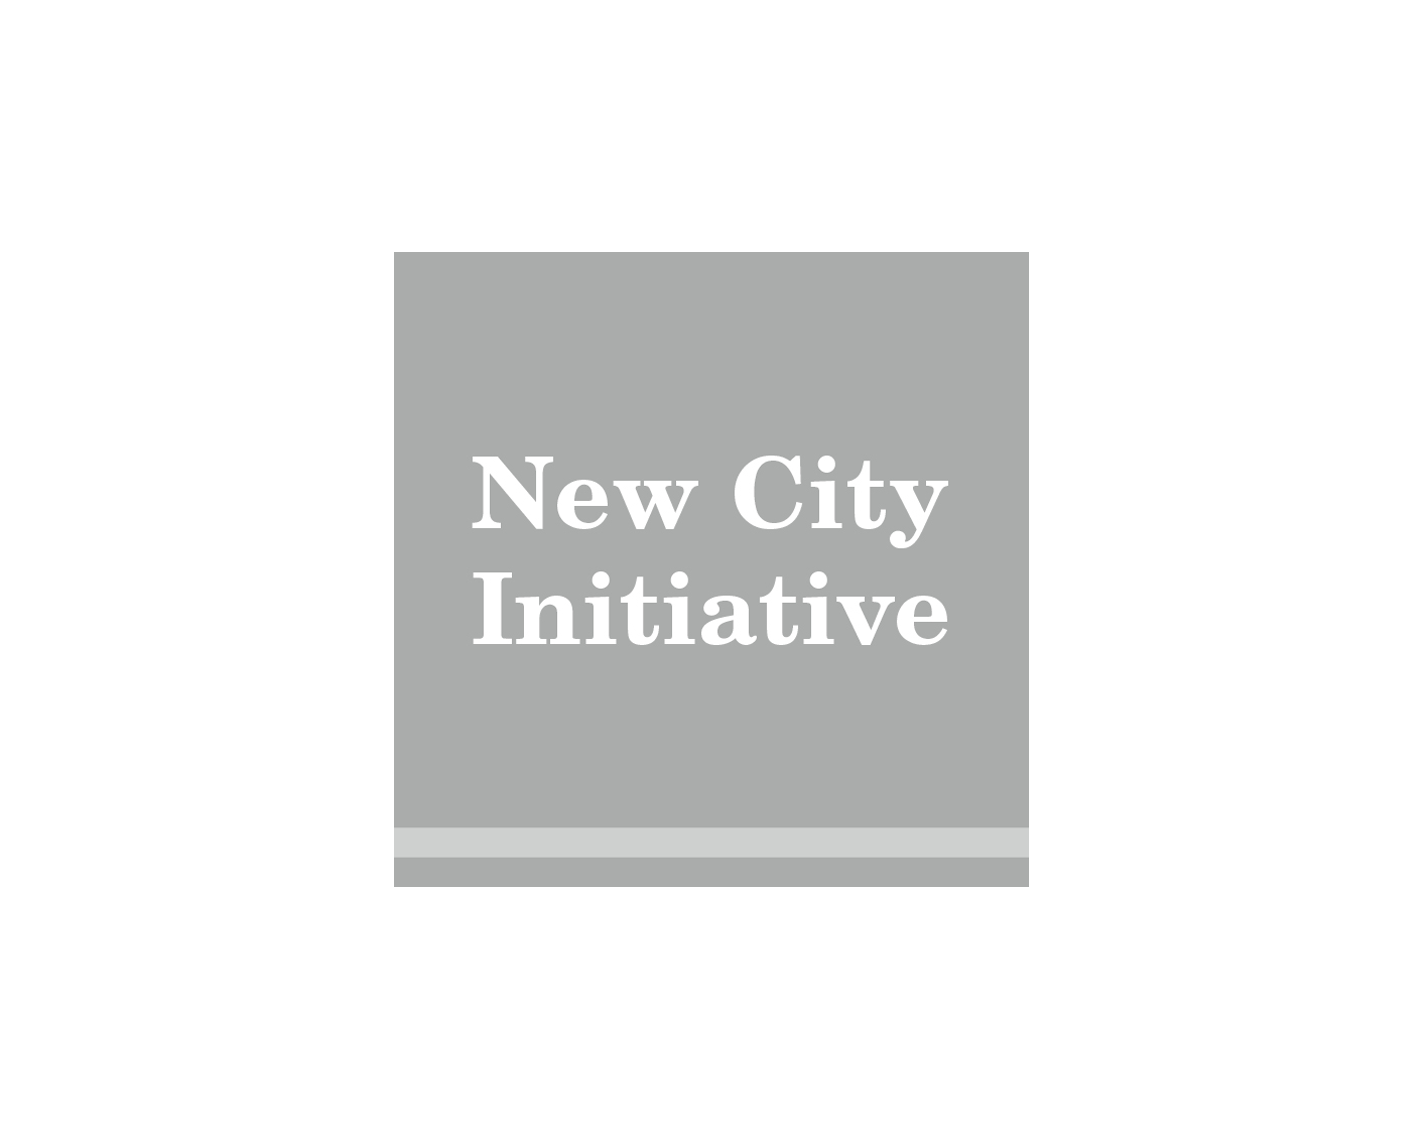 New City Initiative